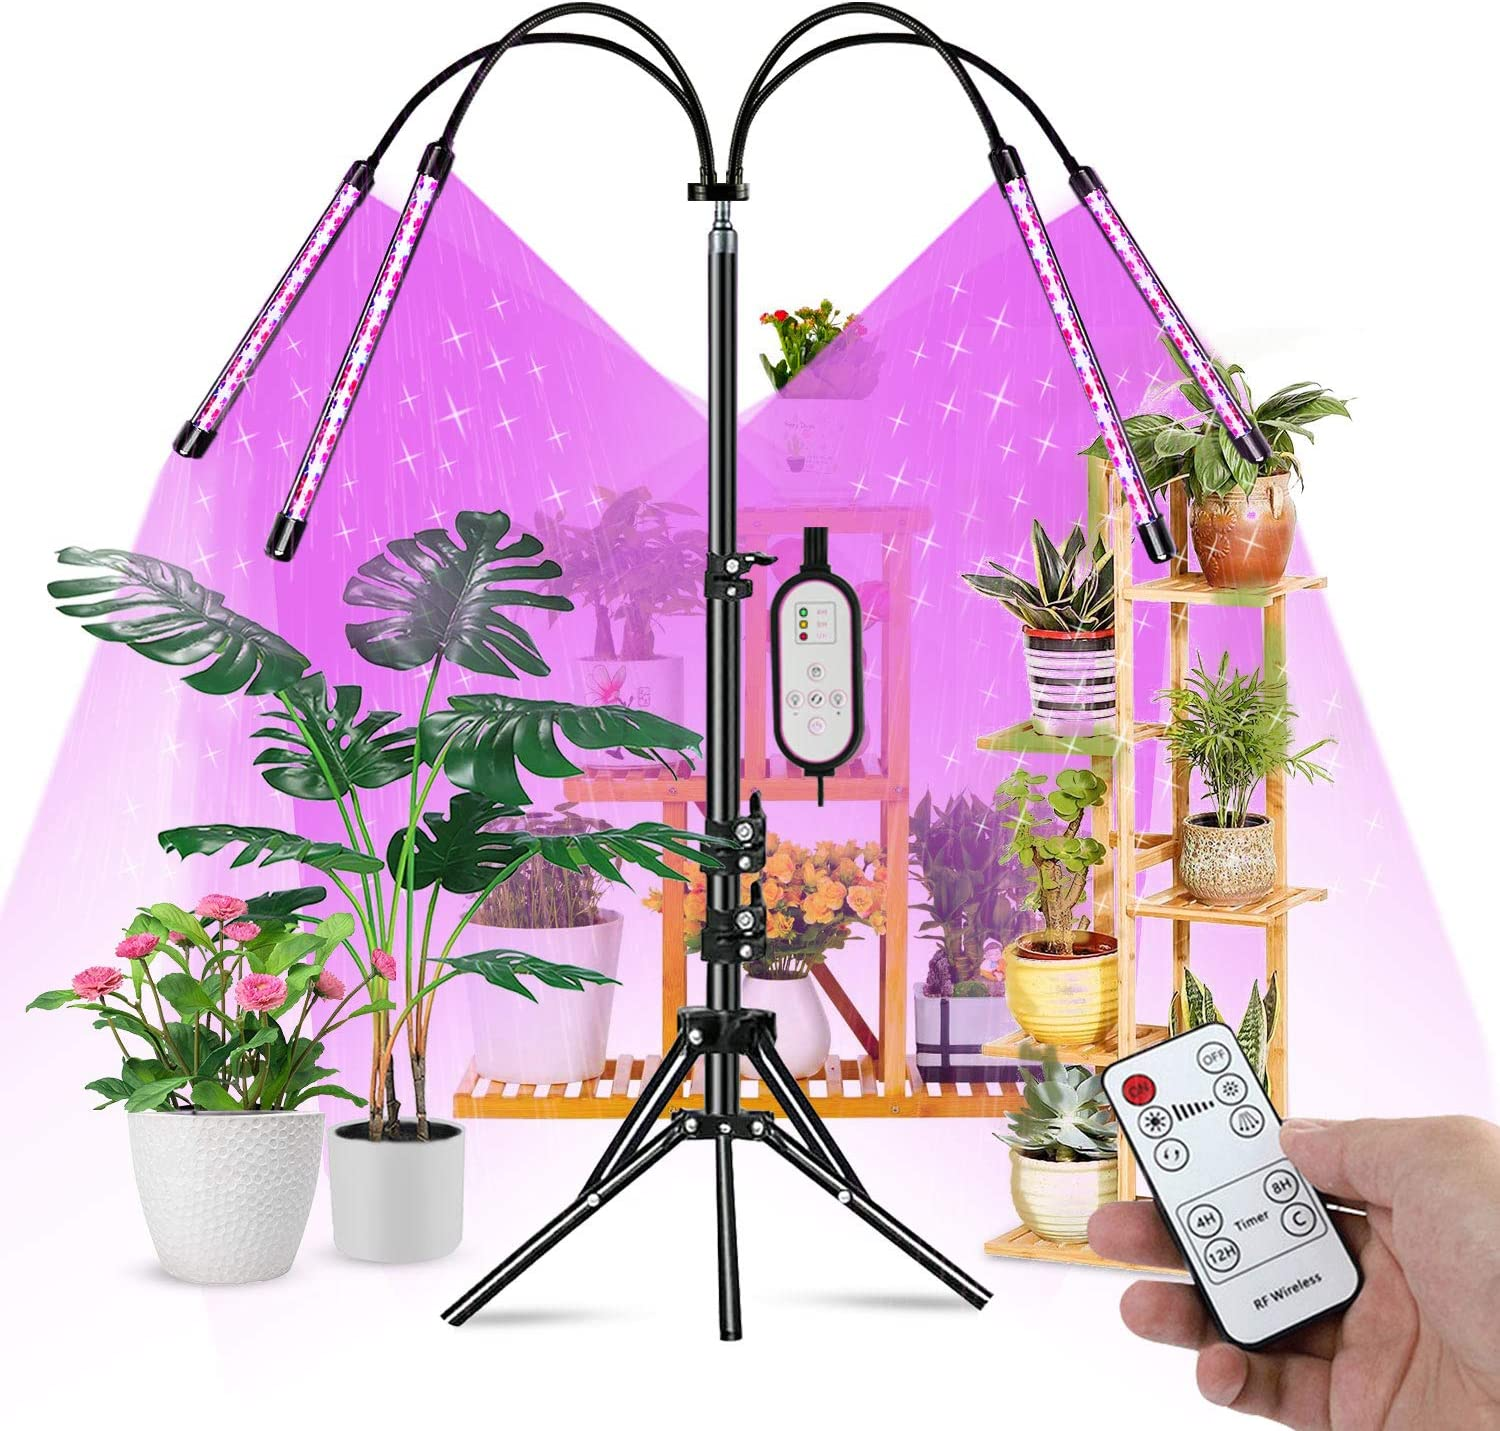 Amazon - $29.99😱 4-Head Grow Light with Tripod Stand for Indoor Plants-10 Level Brightness Plant Light with Full Spectrum